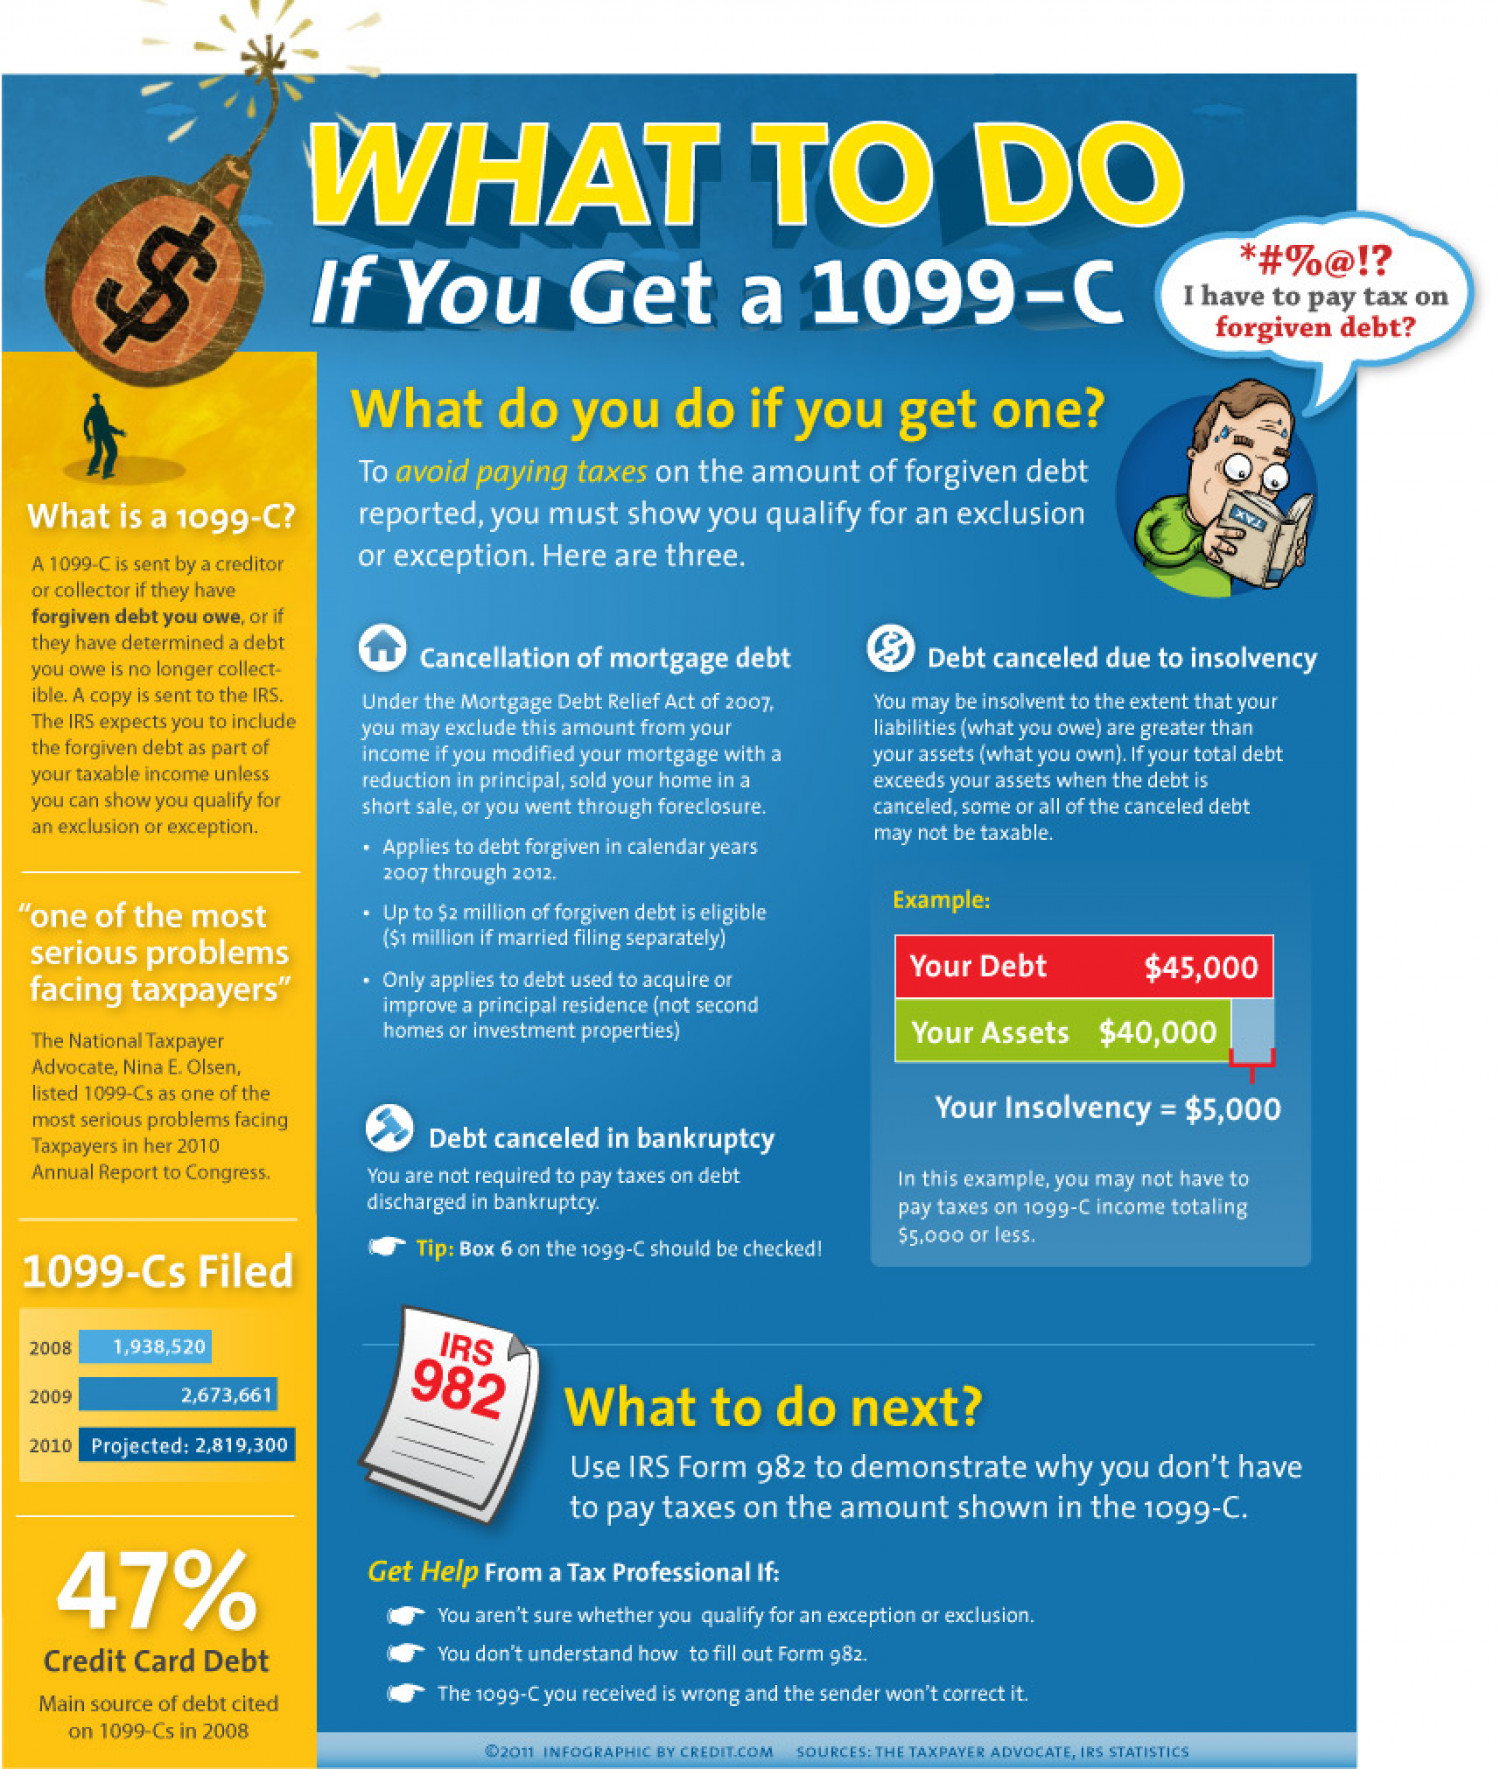 What to Do if You Get a 1099-C Infographic